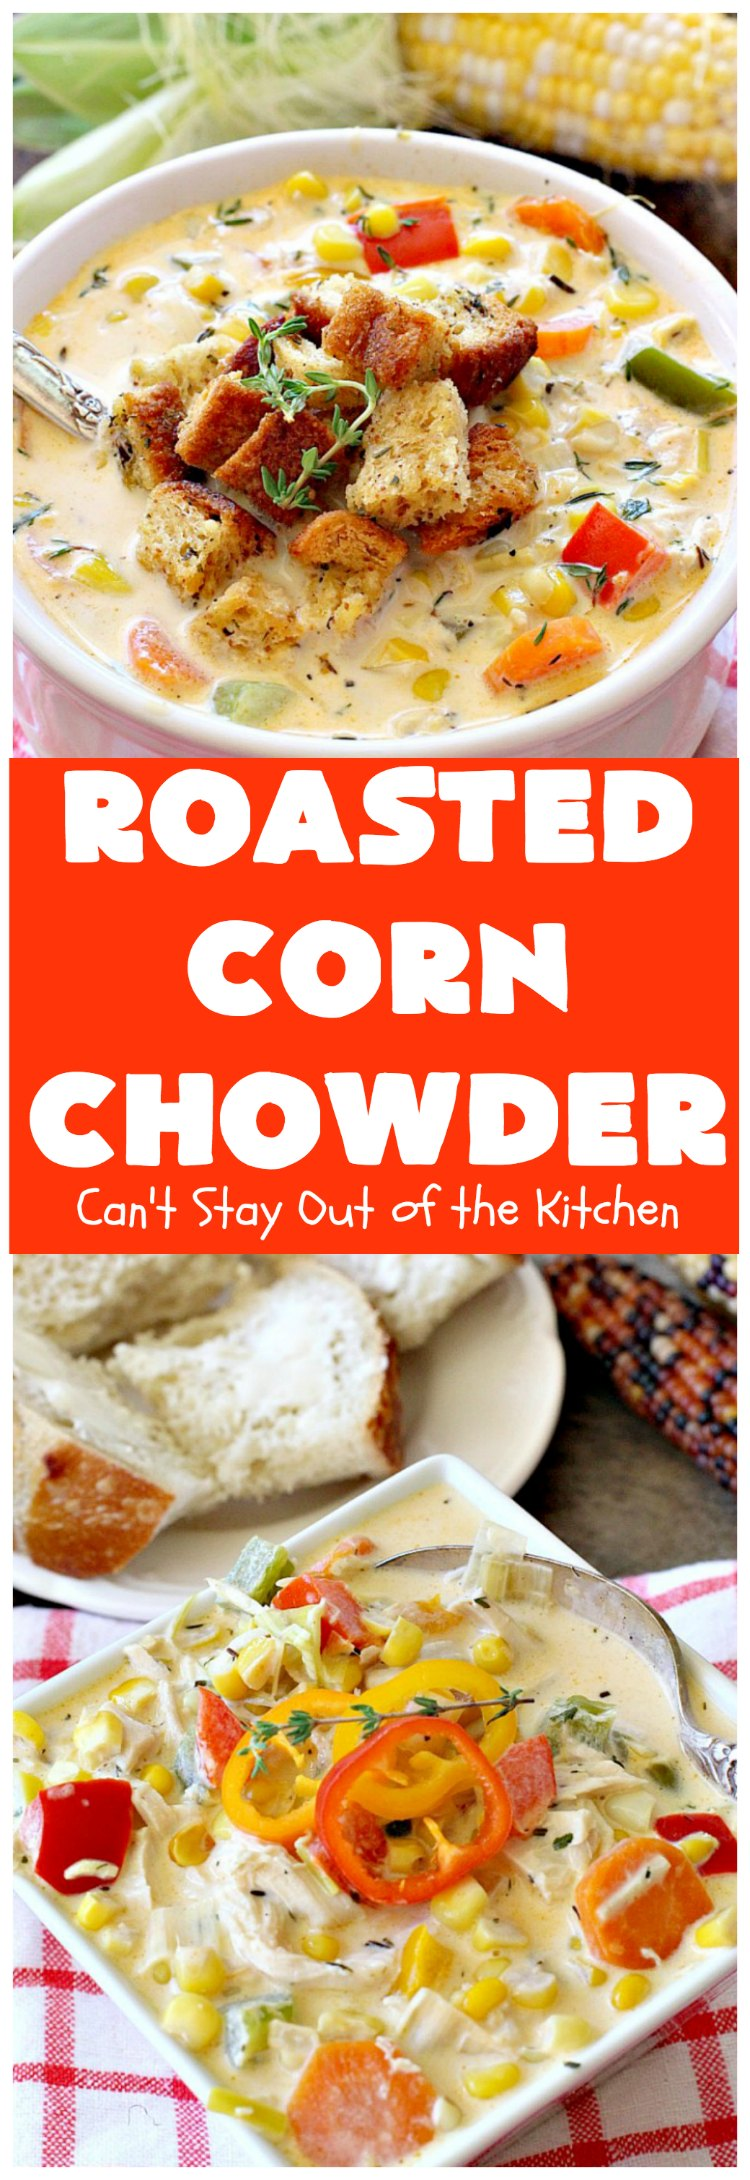 Roasted Corn Chowder | Can't Stay Out of the Kitchen